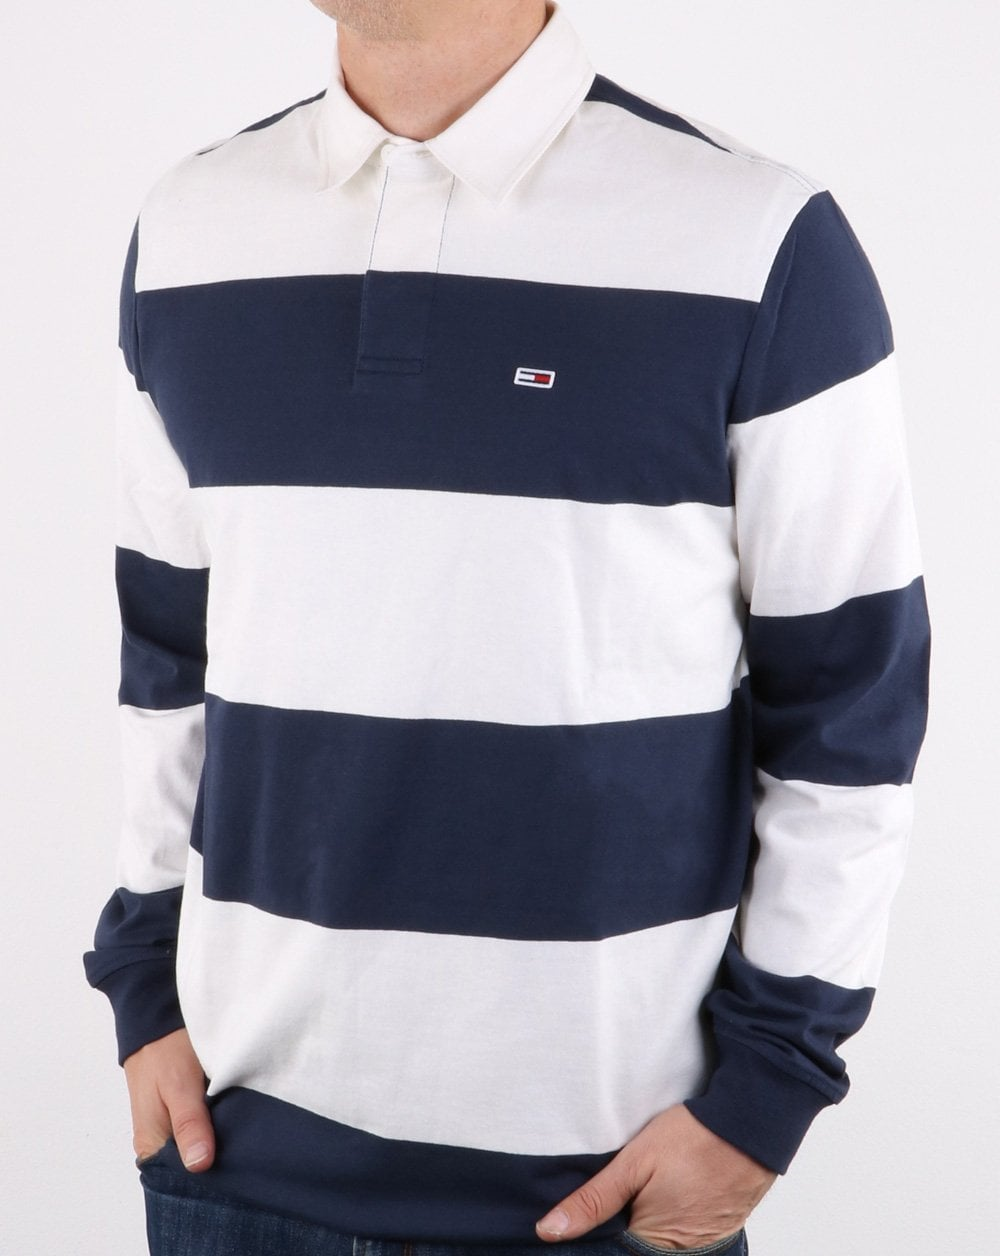 45b463c5dad Tommy Hilfiger Jeans Tommy Hilfiger Classic Rugby Shirt Classic White/Navy